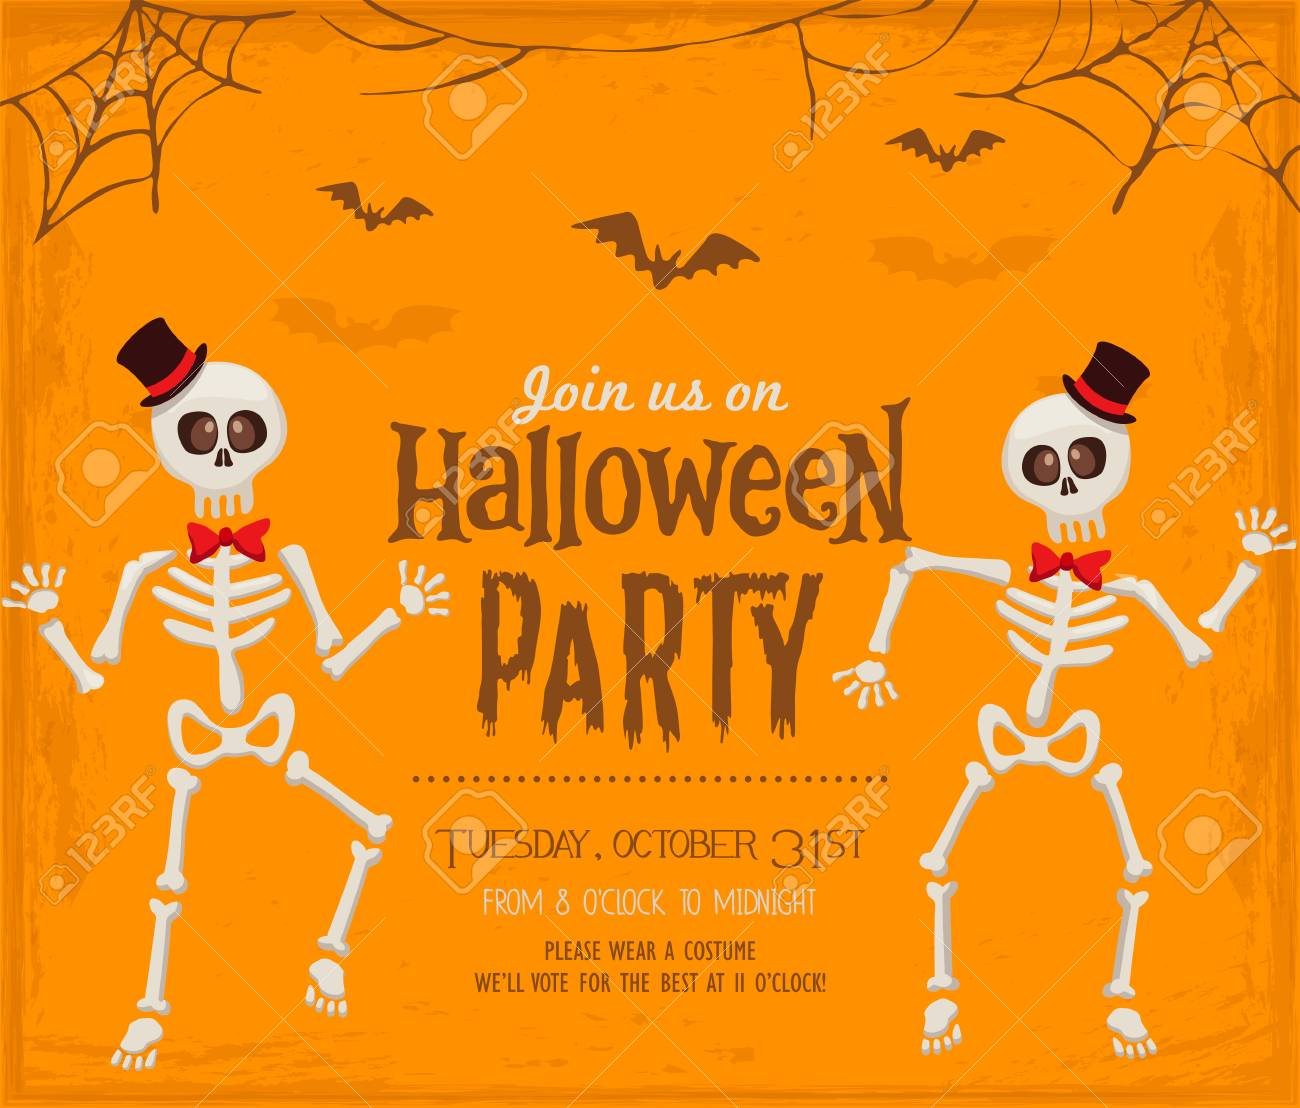 Halloween Party Invitation Card Royalty Free Cliparts Vectors